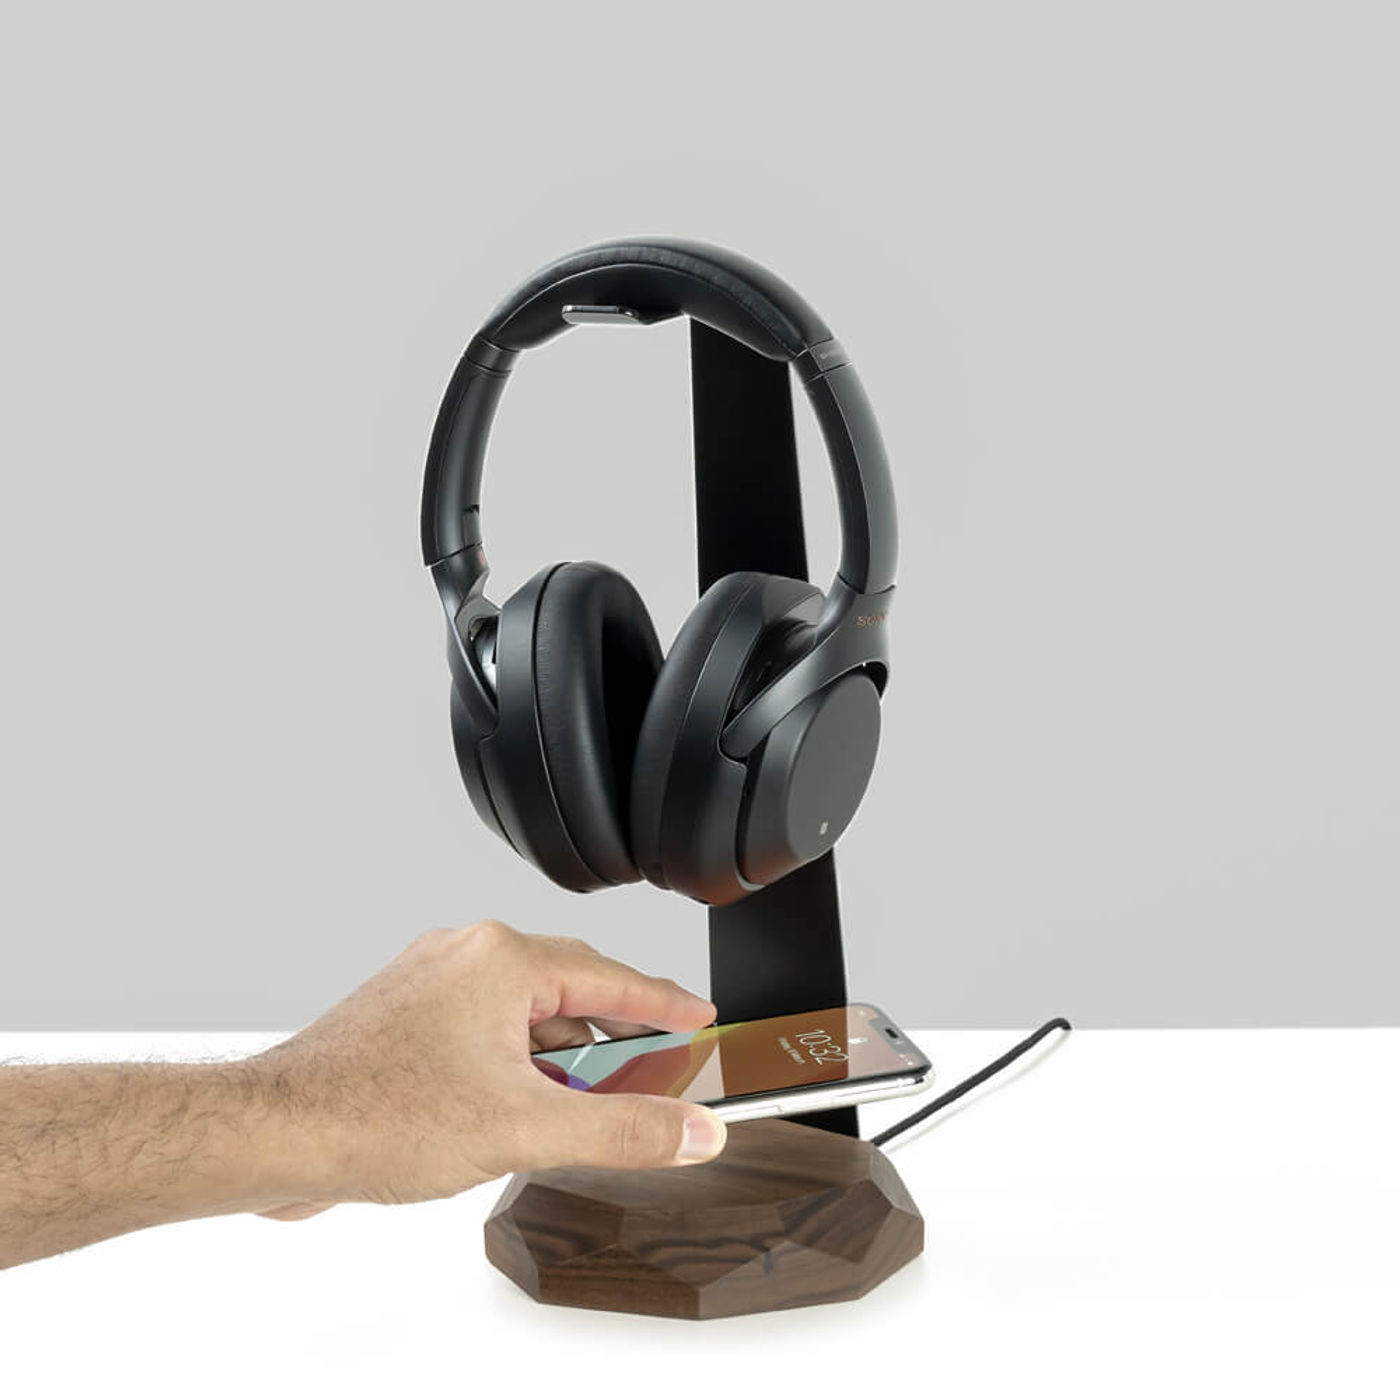 Walnut 2 in 1 Headphone Stand & Charger | Bombinate